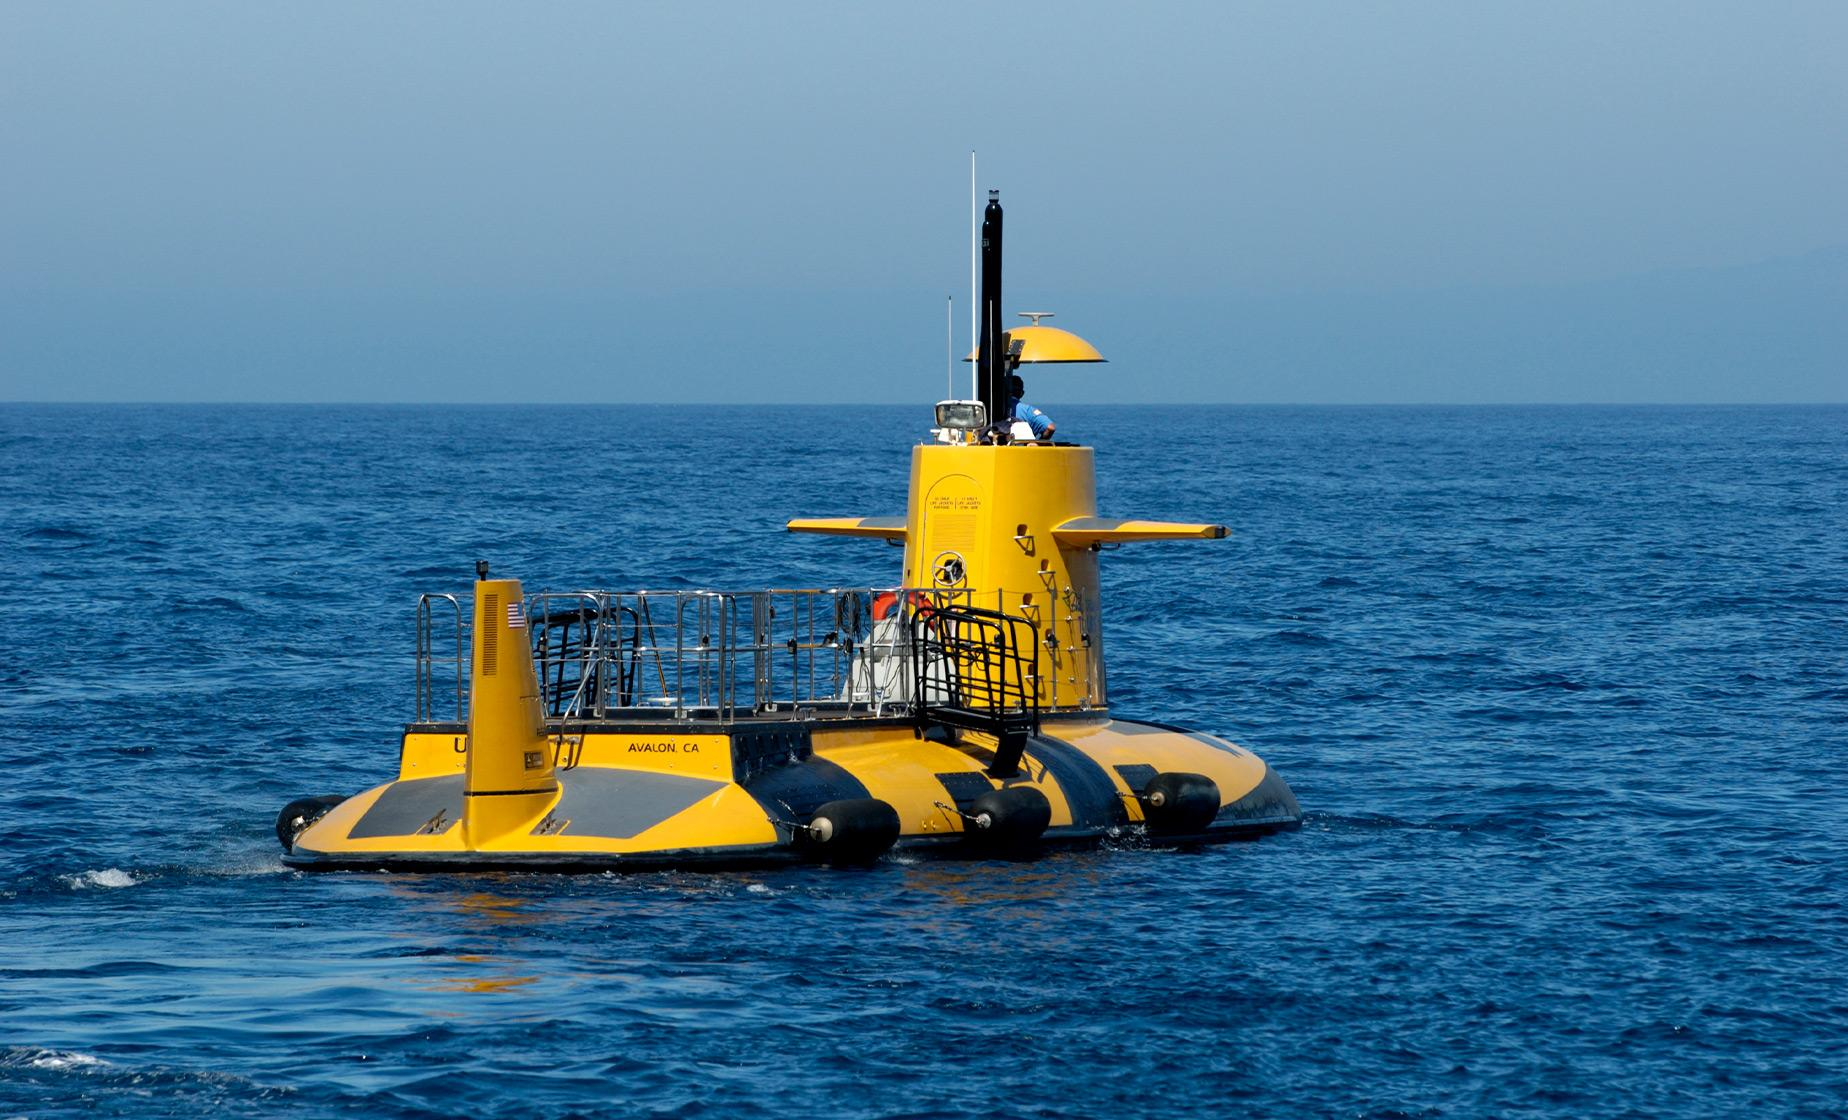 Catalina Semi - Submarine